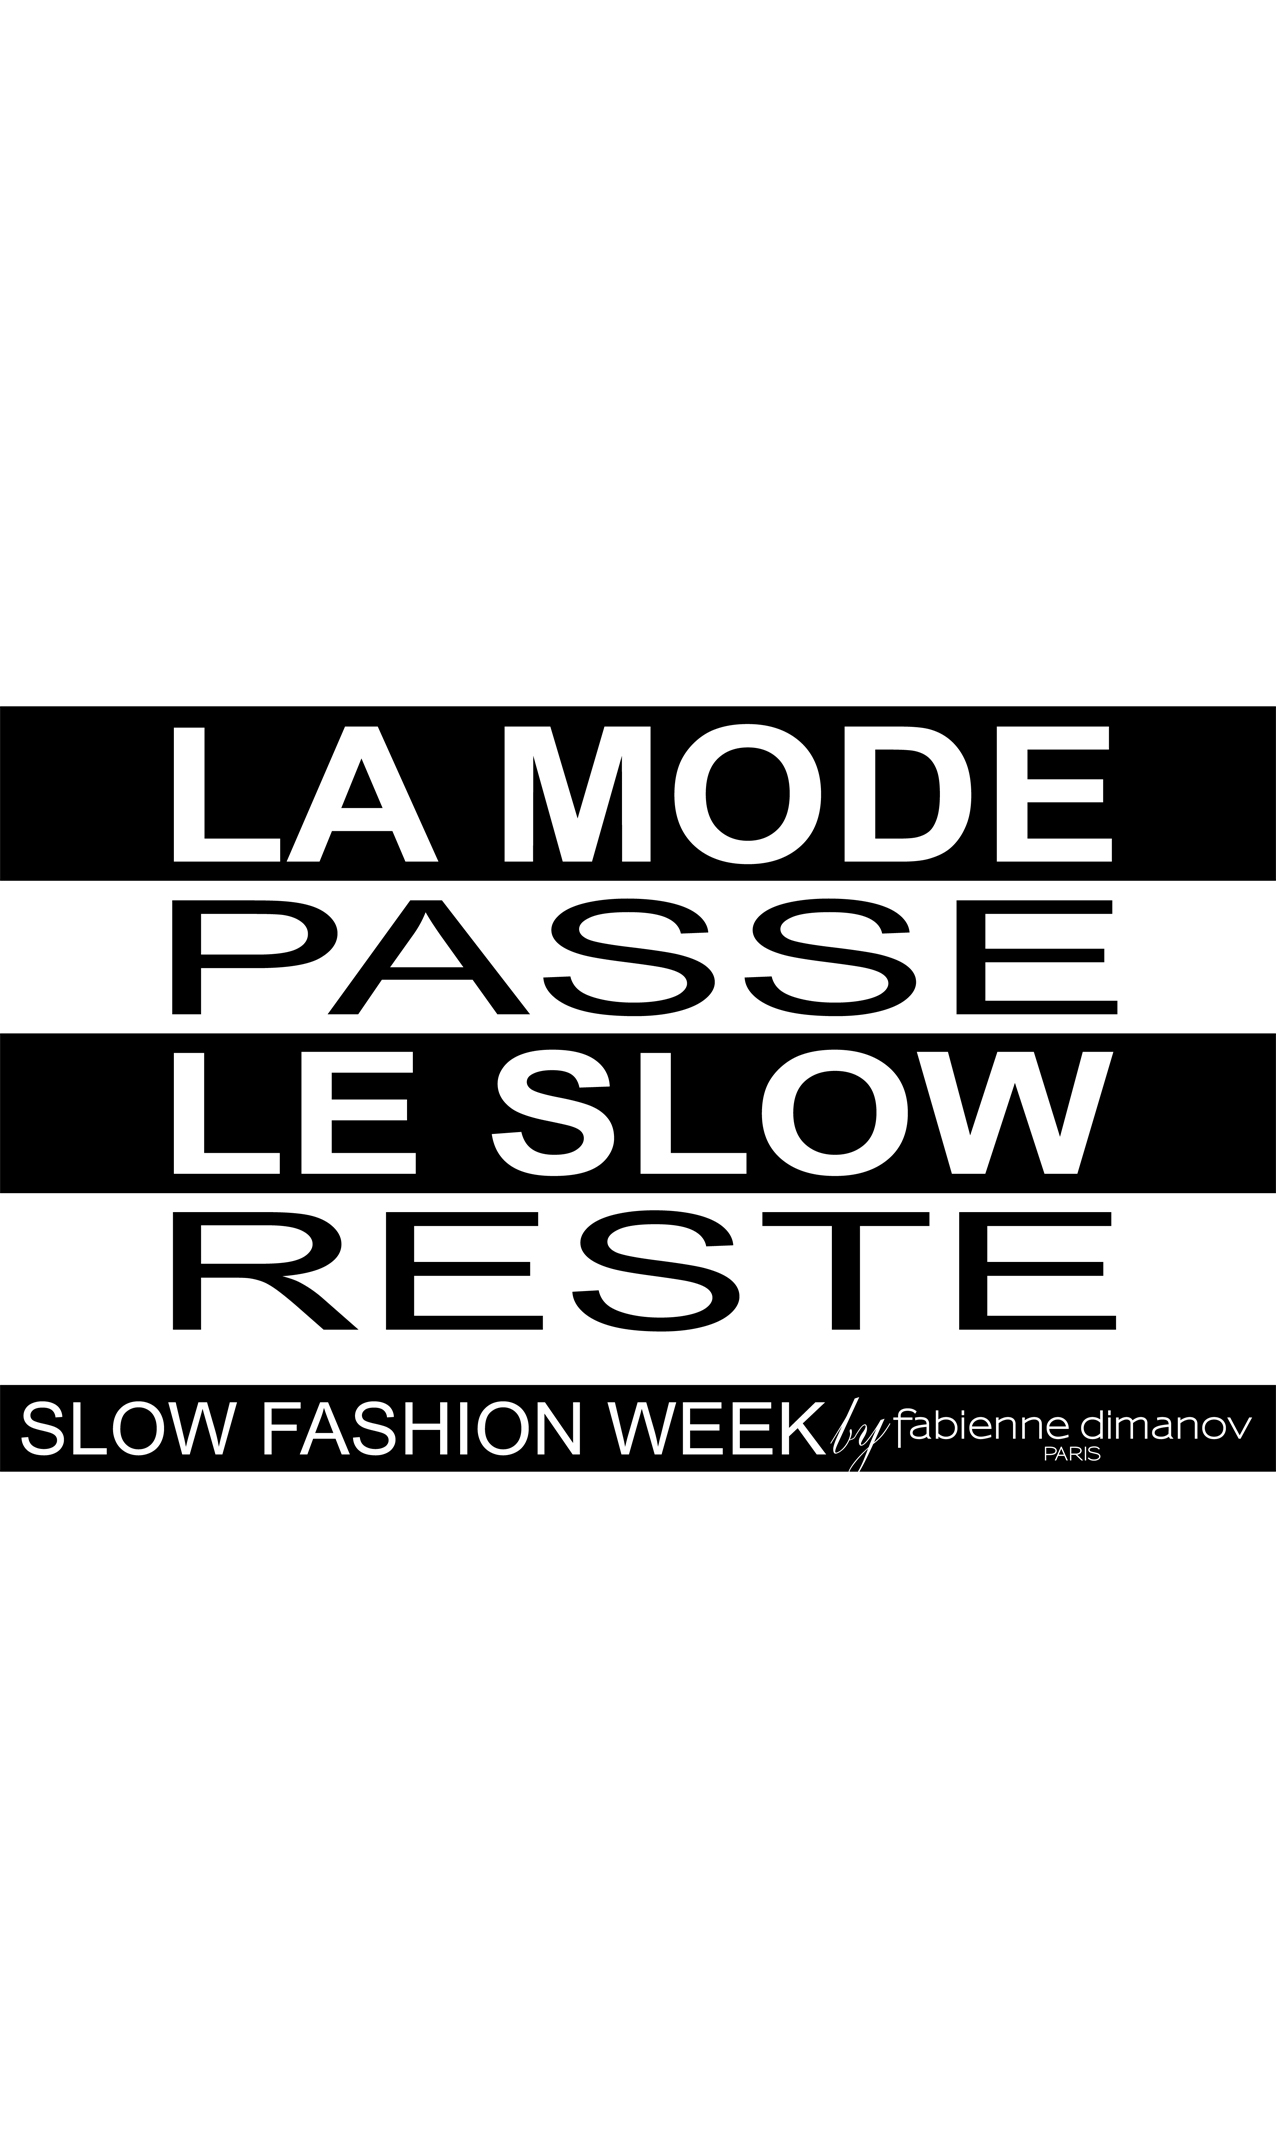 Slow Fashion Week - Fabienne Dimanov Paris